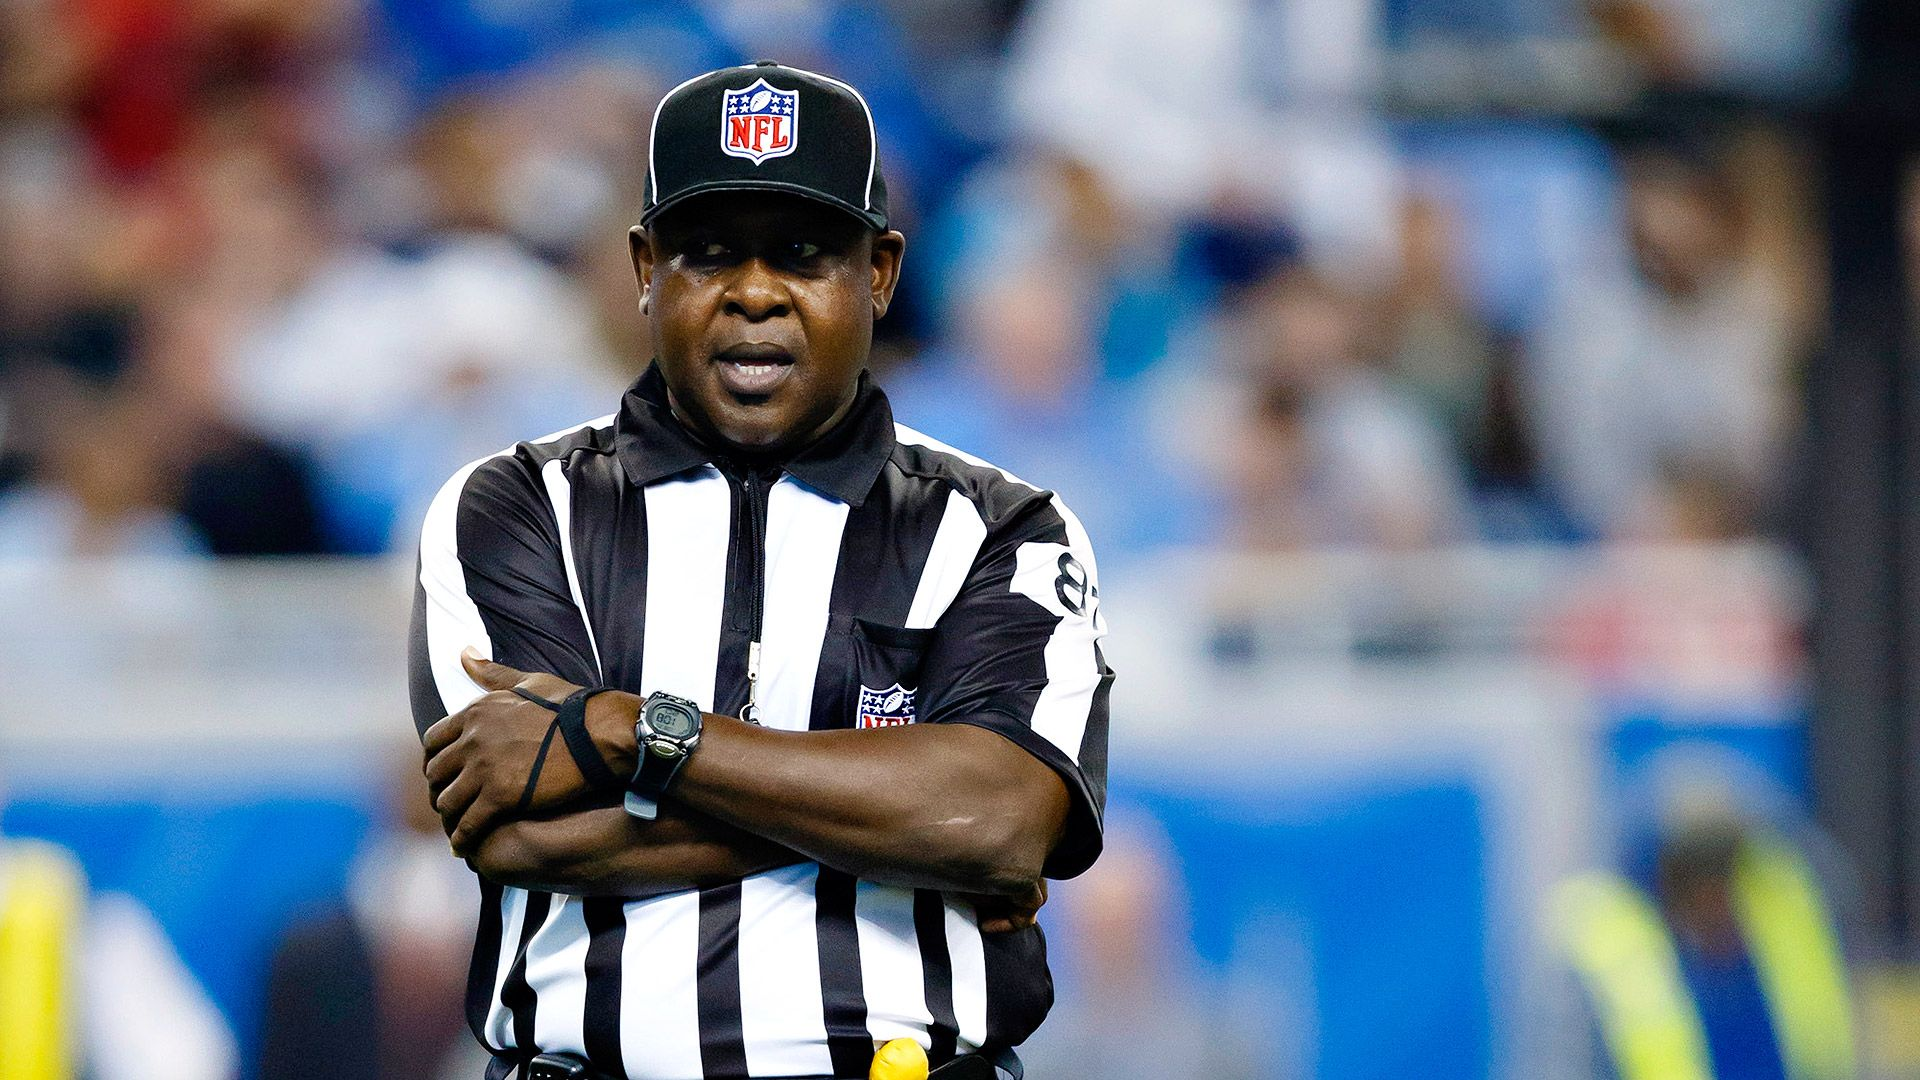 The NFLRA expects umpire Roy Ellison, who is on administrative leave while the NFL reviews his confrontation with the Bills' Jerry Hughes, to be cleared by the league.